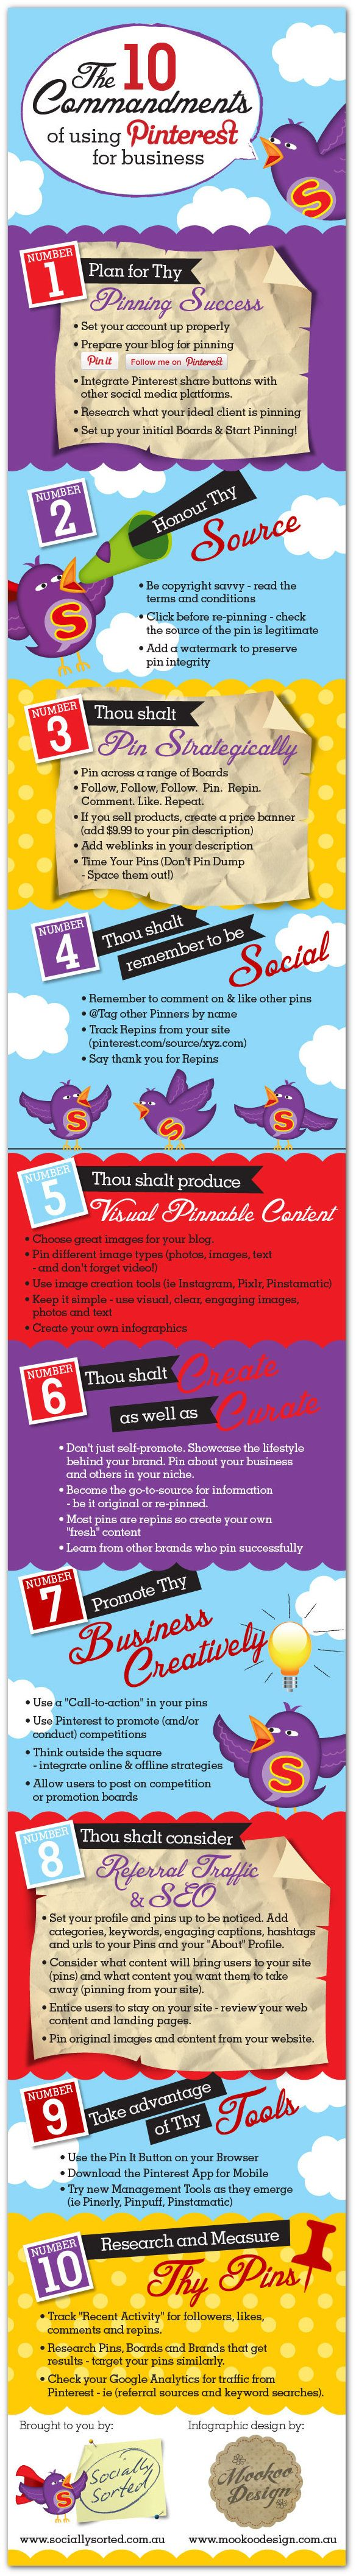 The 10 commandments of Pinterest for business